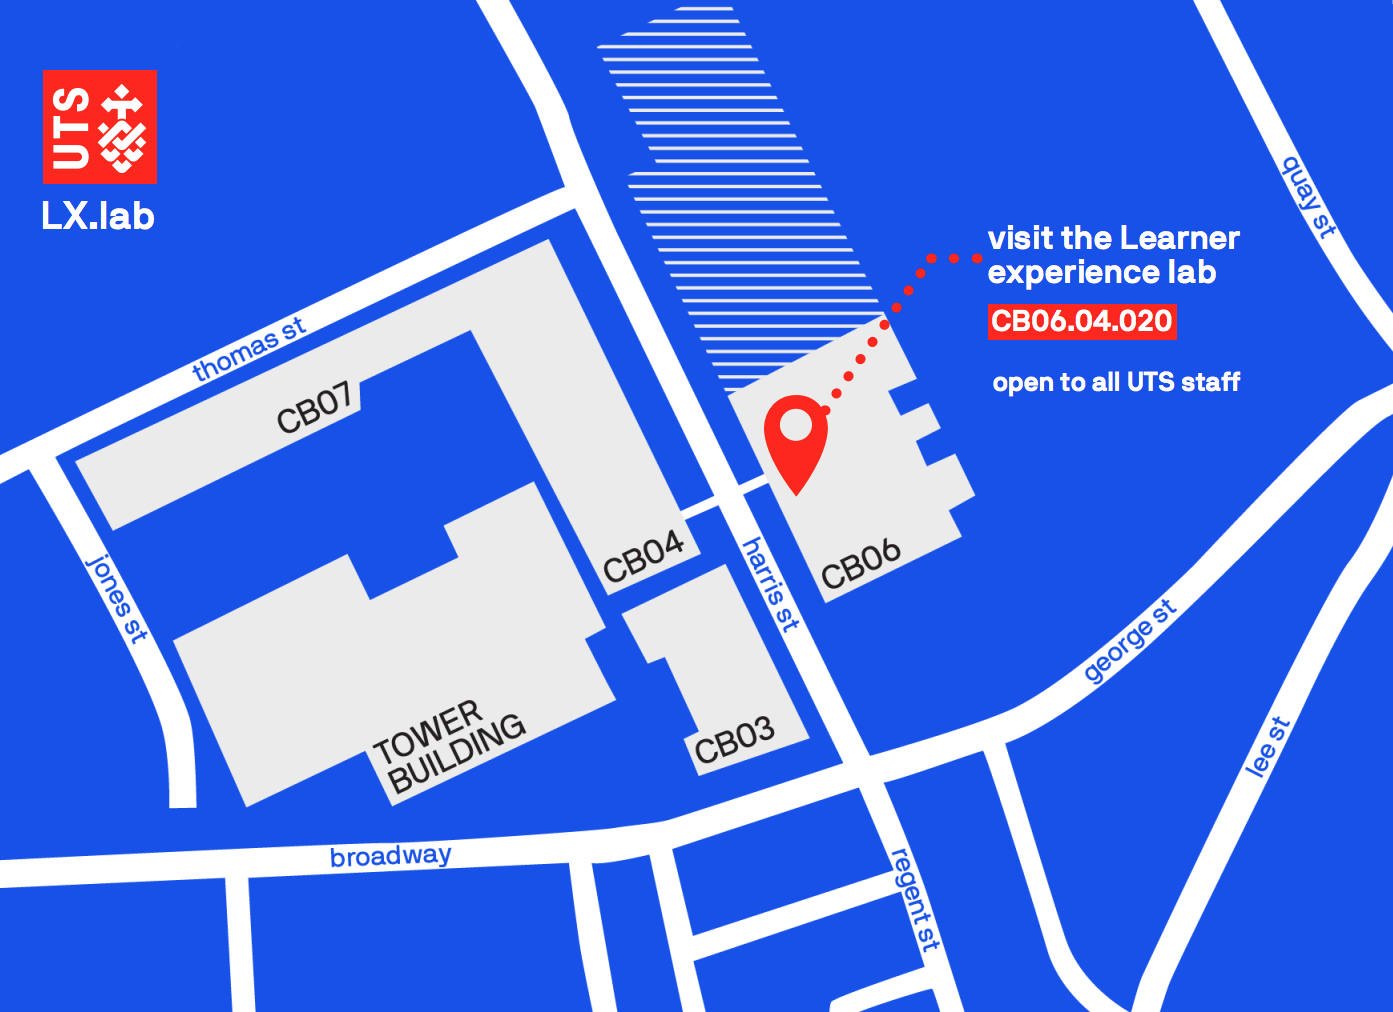 Map showing the LX.lab in building 6 level 4 of the UTS campus